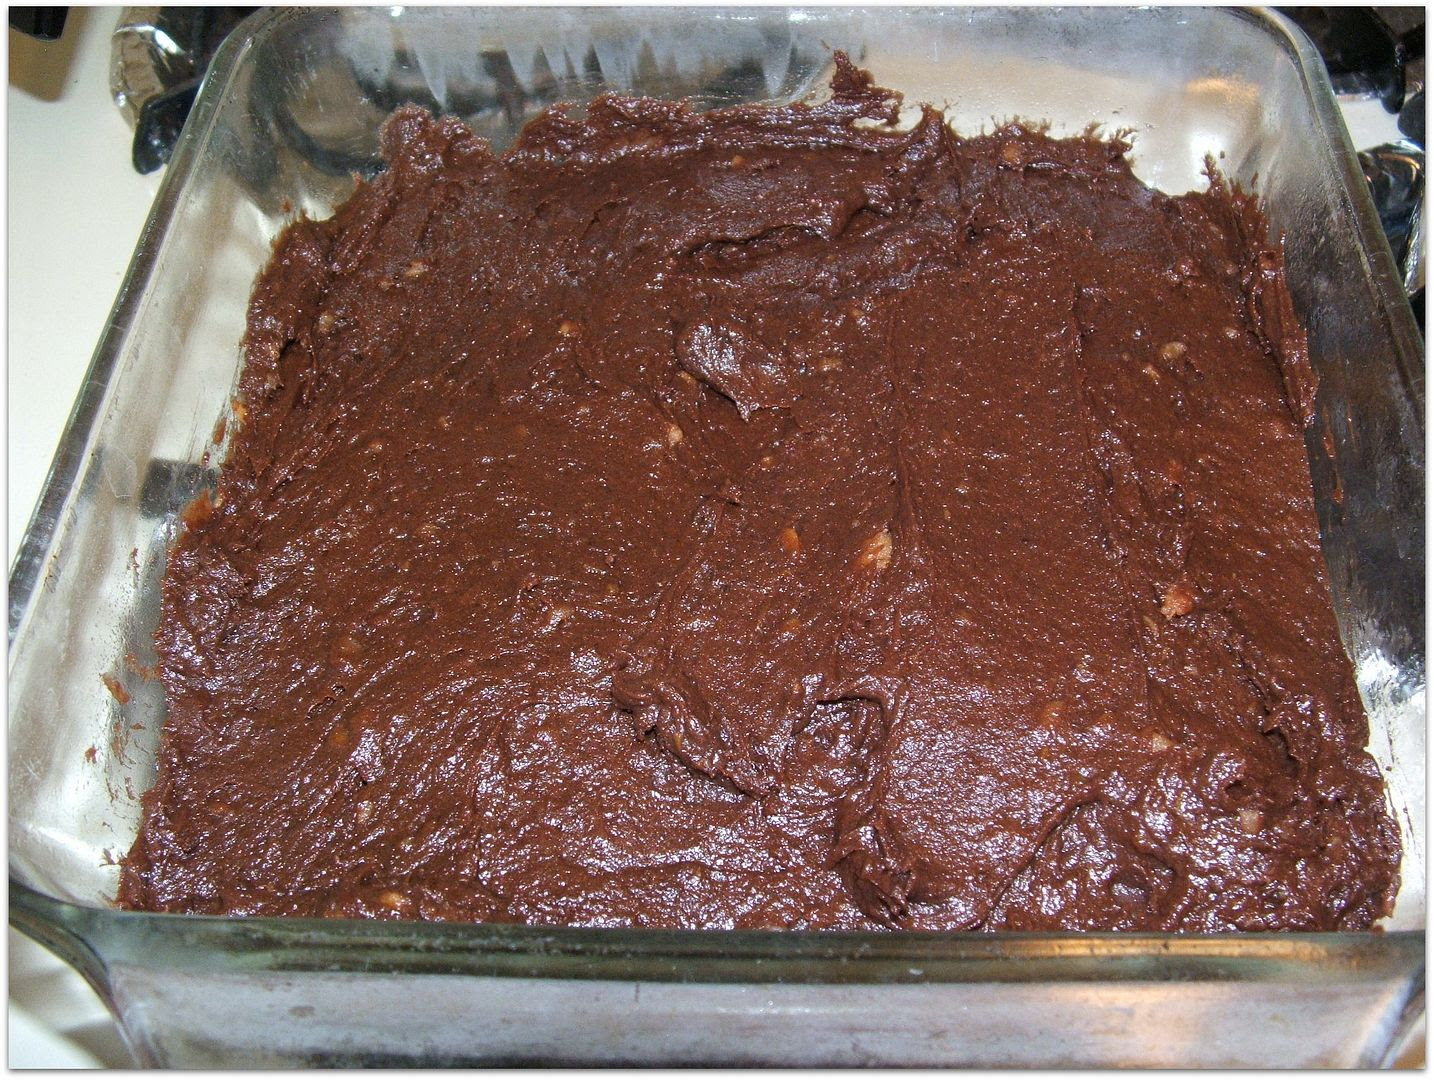 Sweet Potato Brownies by Angie Ouellette-Tower for godsgrowinggarden.com photo 002_zps99f5507a.jpg